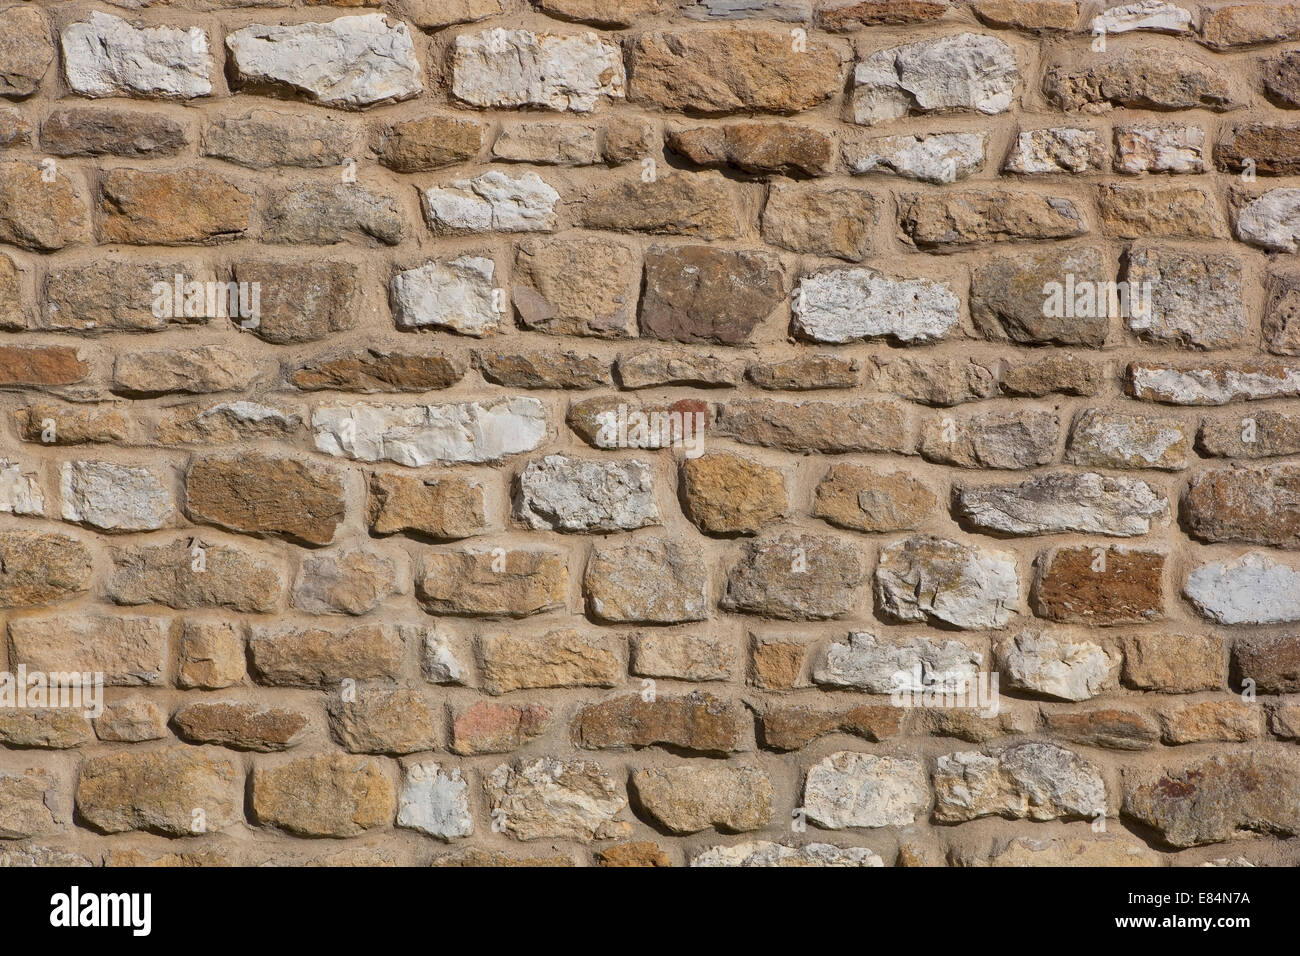 Natural Stone Texture : Architectural background pattern and textures of a natural